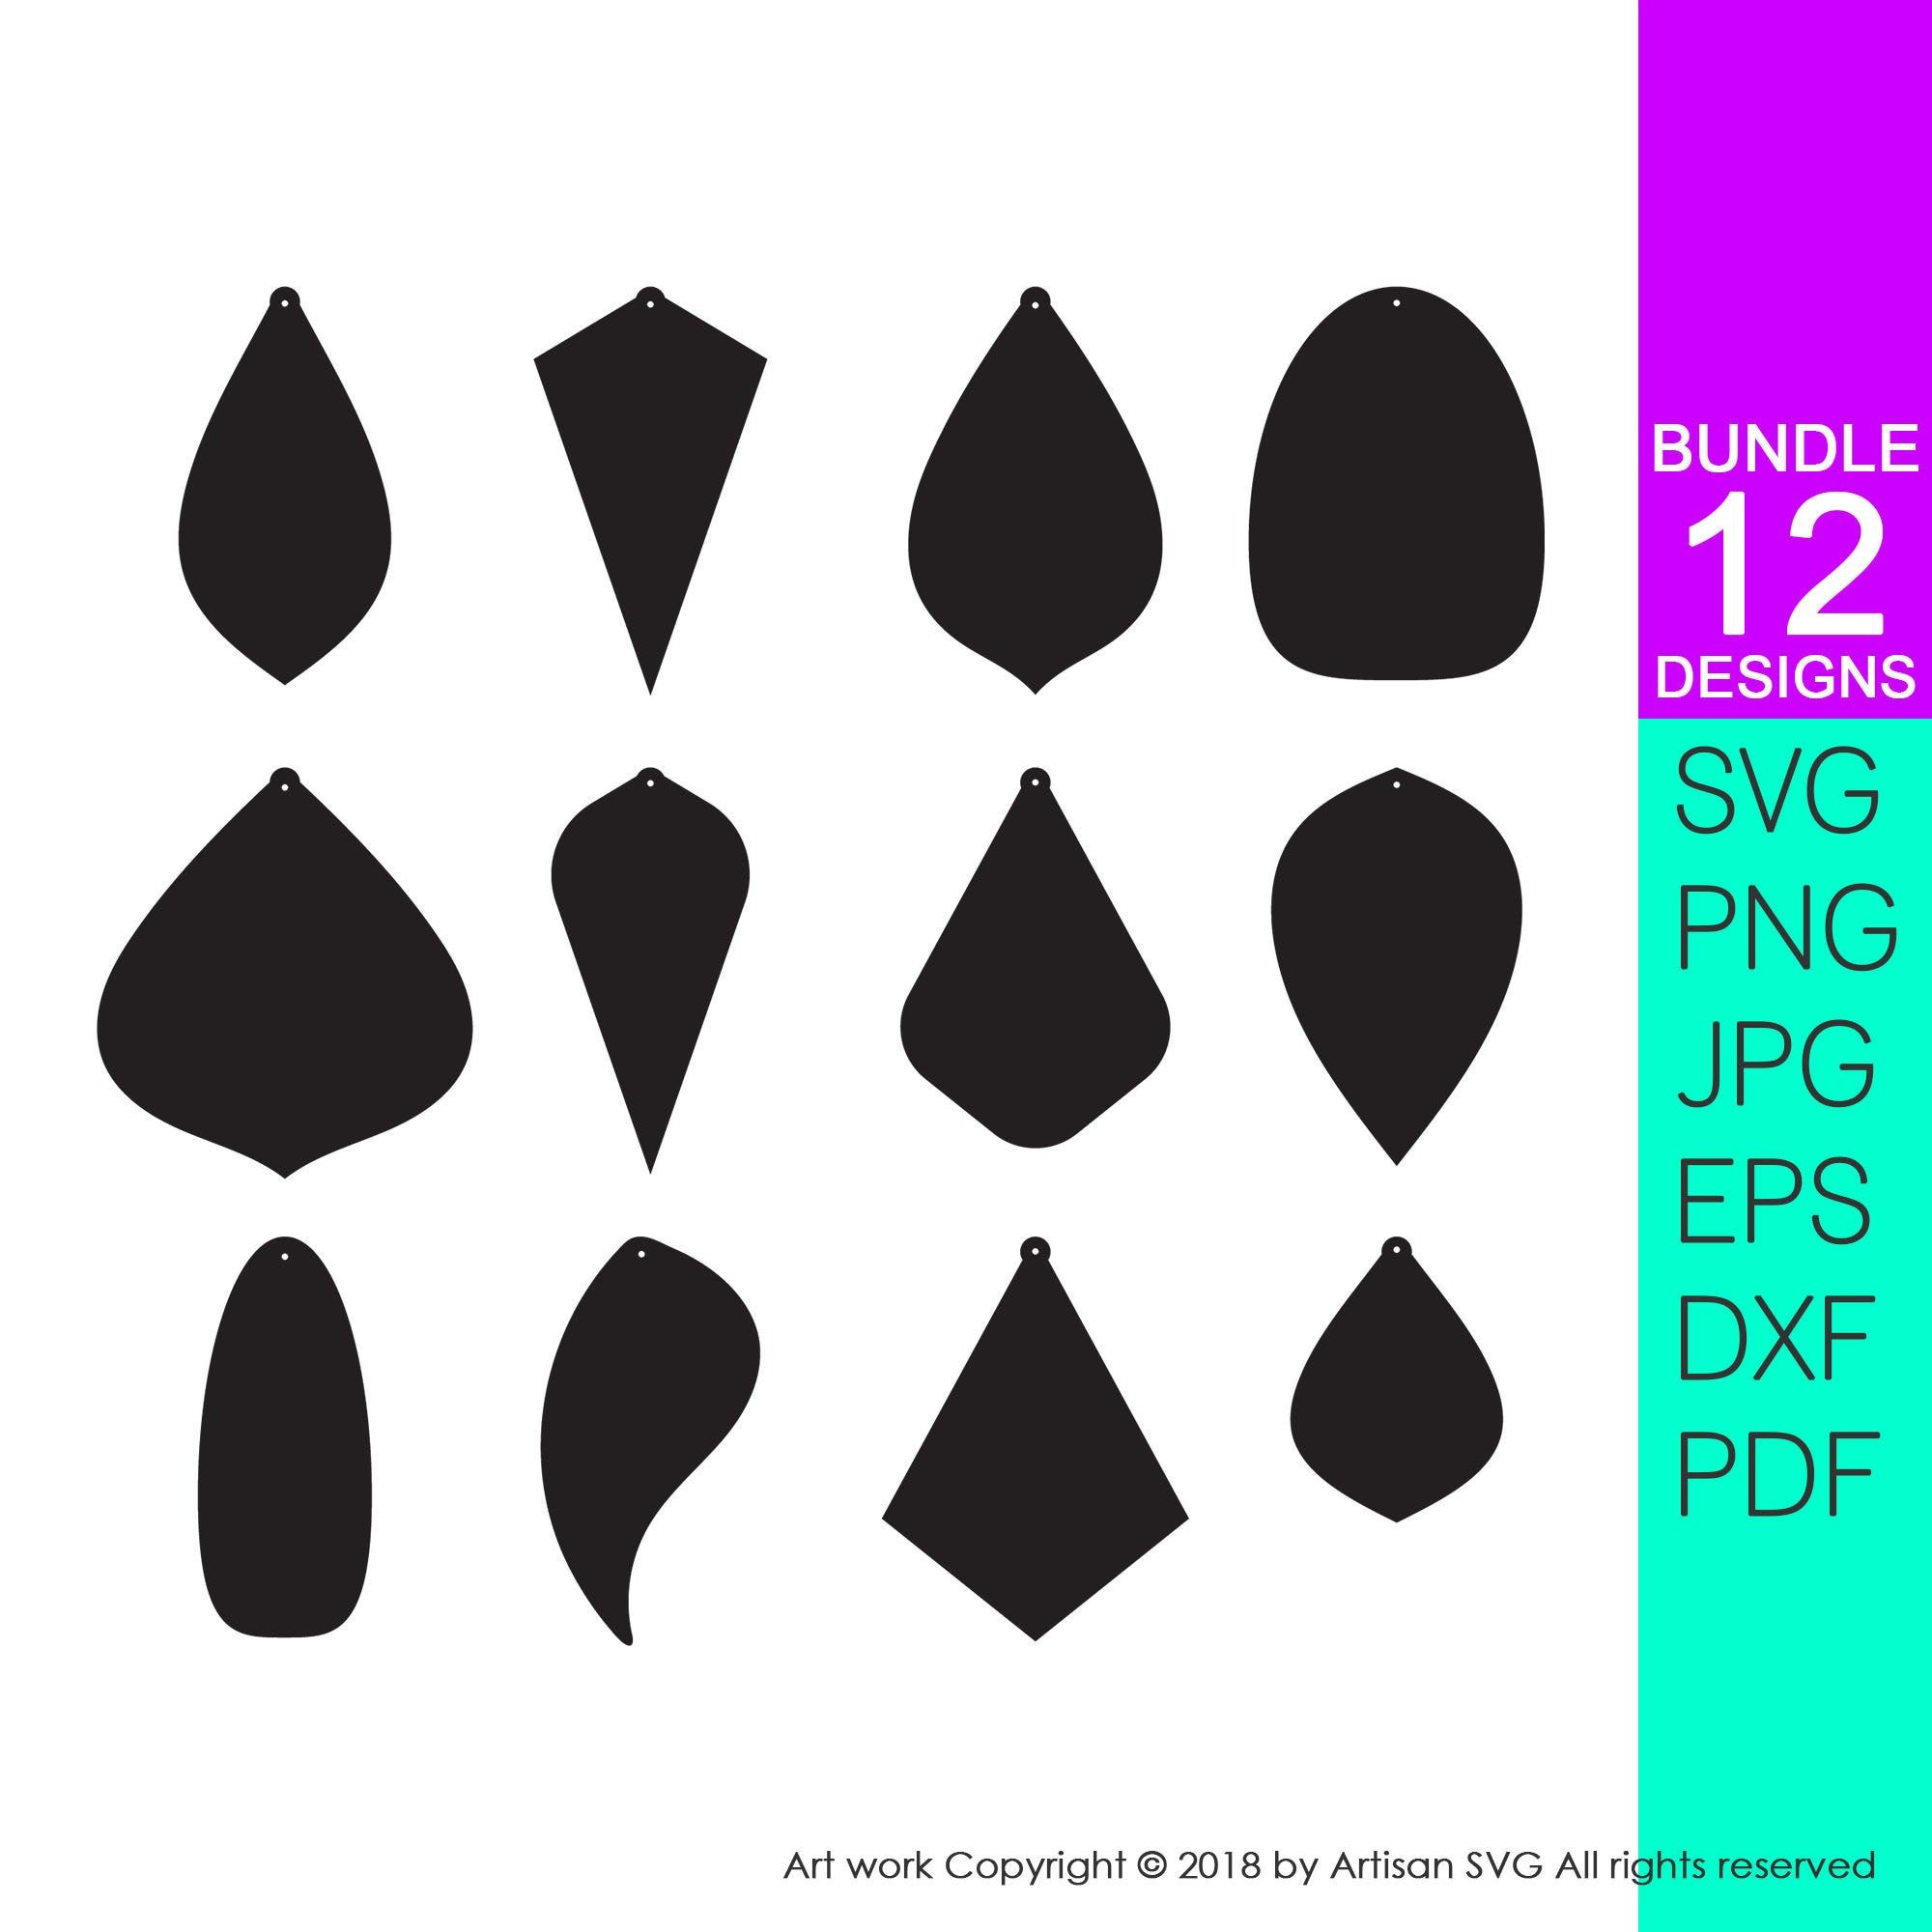 silhouette or diy. Svg cutting templates for faux leather earring three pairs earrings template SVG for cricut